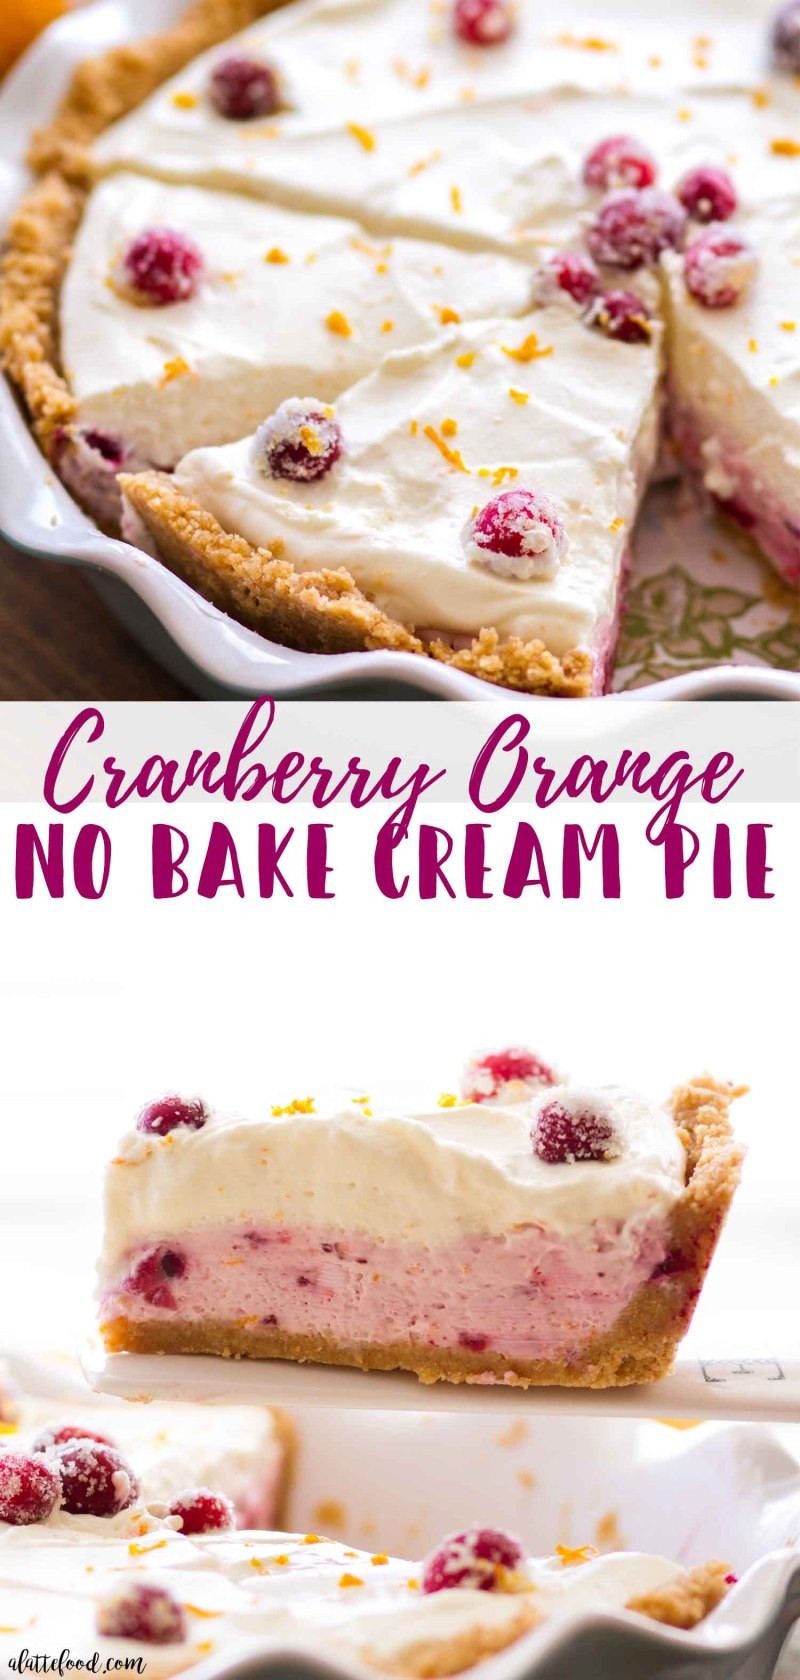 Homemade No bake Cranberry Orange Cream Pie is the perfect recipe for any holiday dessert party!